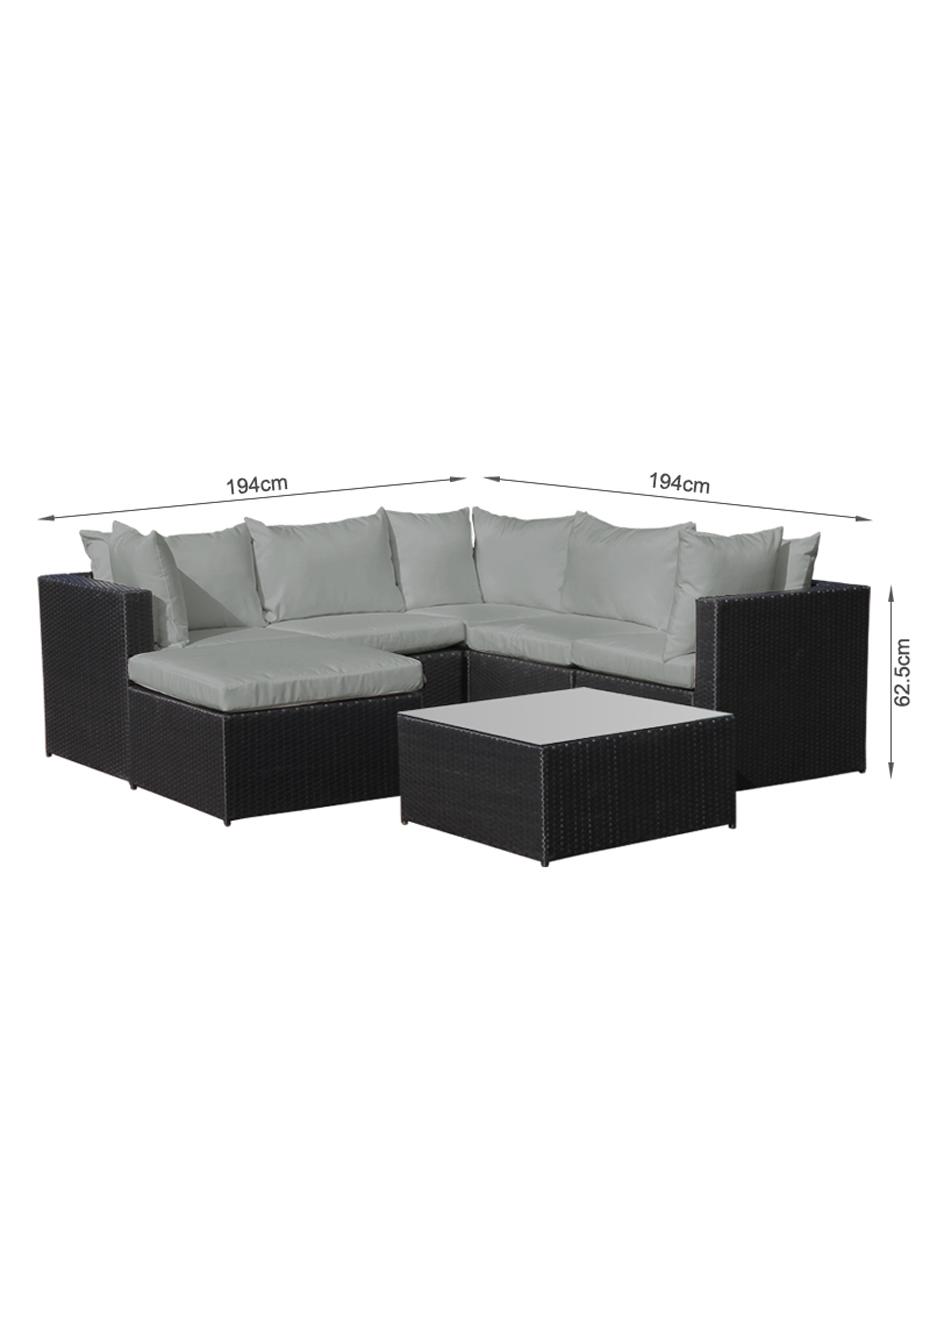 Outdoor Sofa Rattan Betalife Outdoor Rattan Sofa 7pcs Set